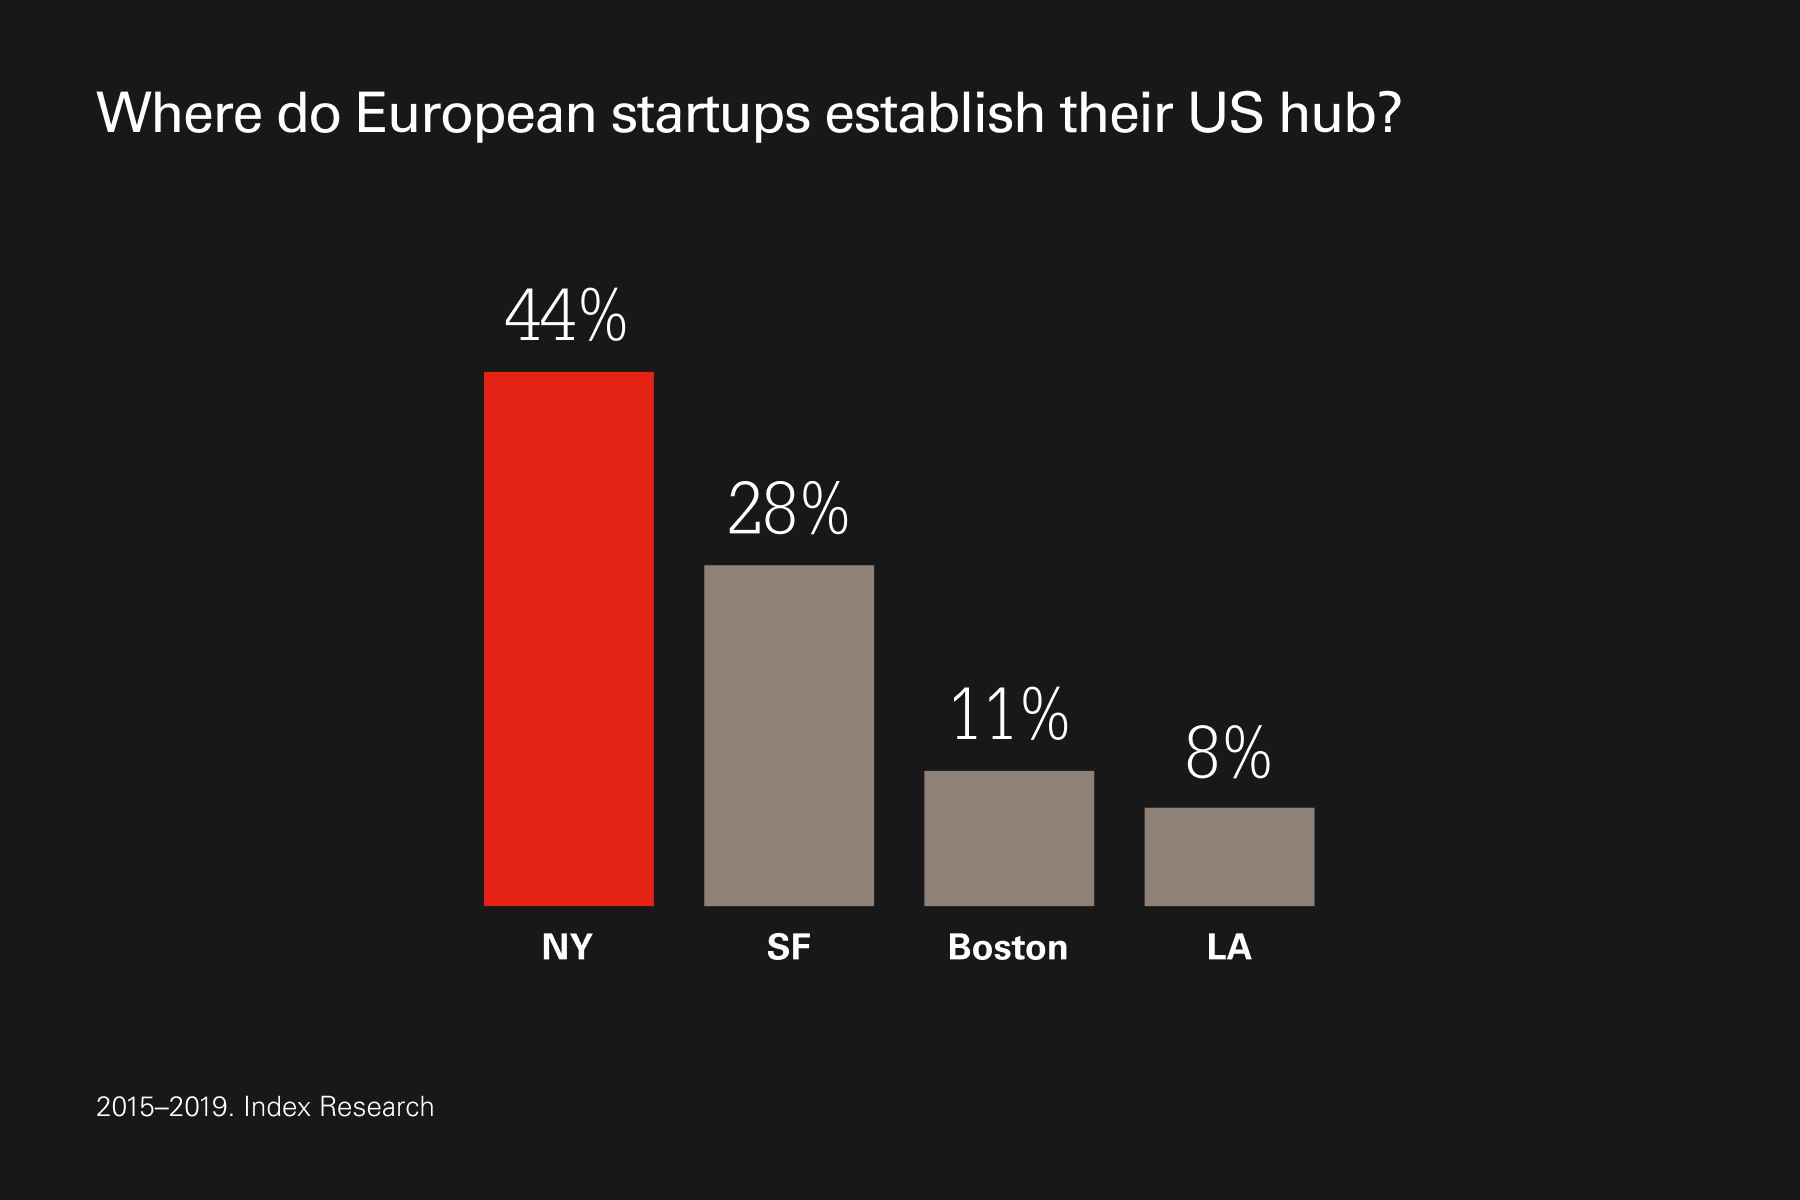 44% of startups choose New York for their US base.